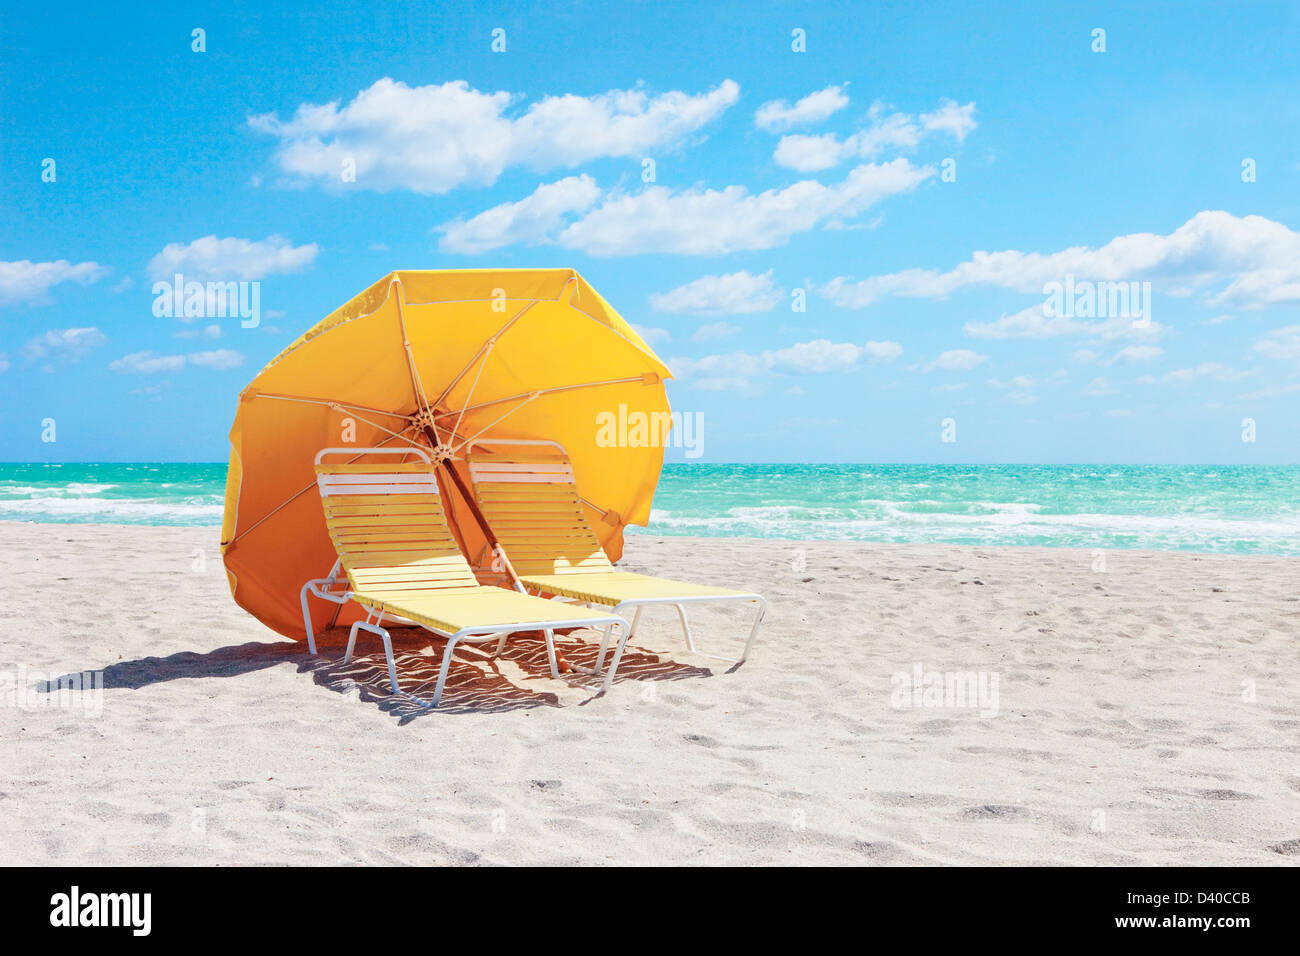 A Pair Of Sunbathing Chairs And Beach Umbrella